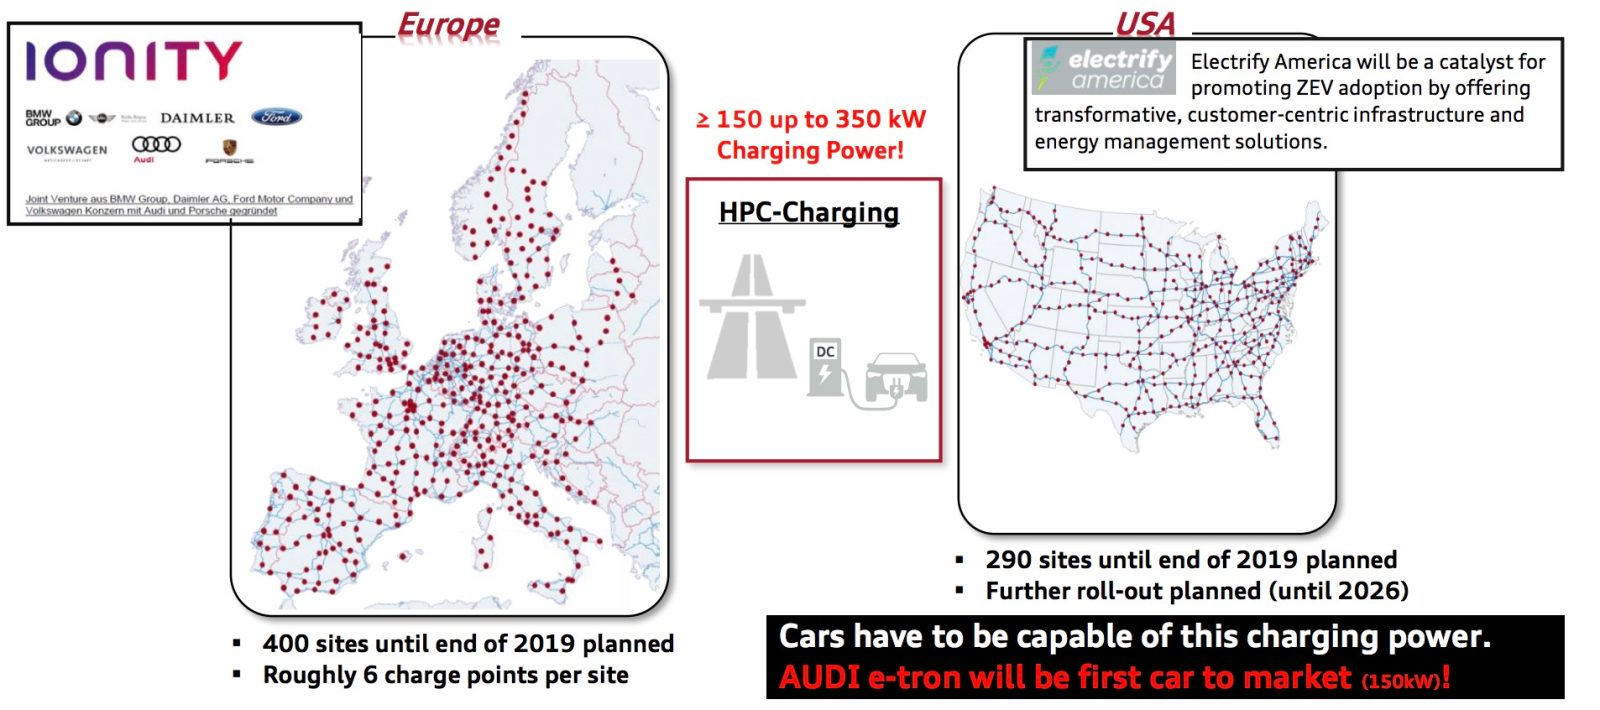 First Look At Ionity Ultra Fast Charging Network Map Of Planned Stations Electrek,Pictures For Bathroom Walls